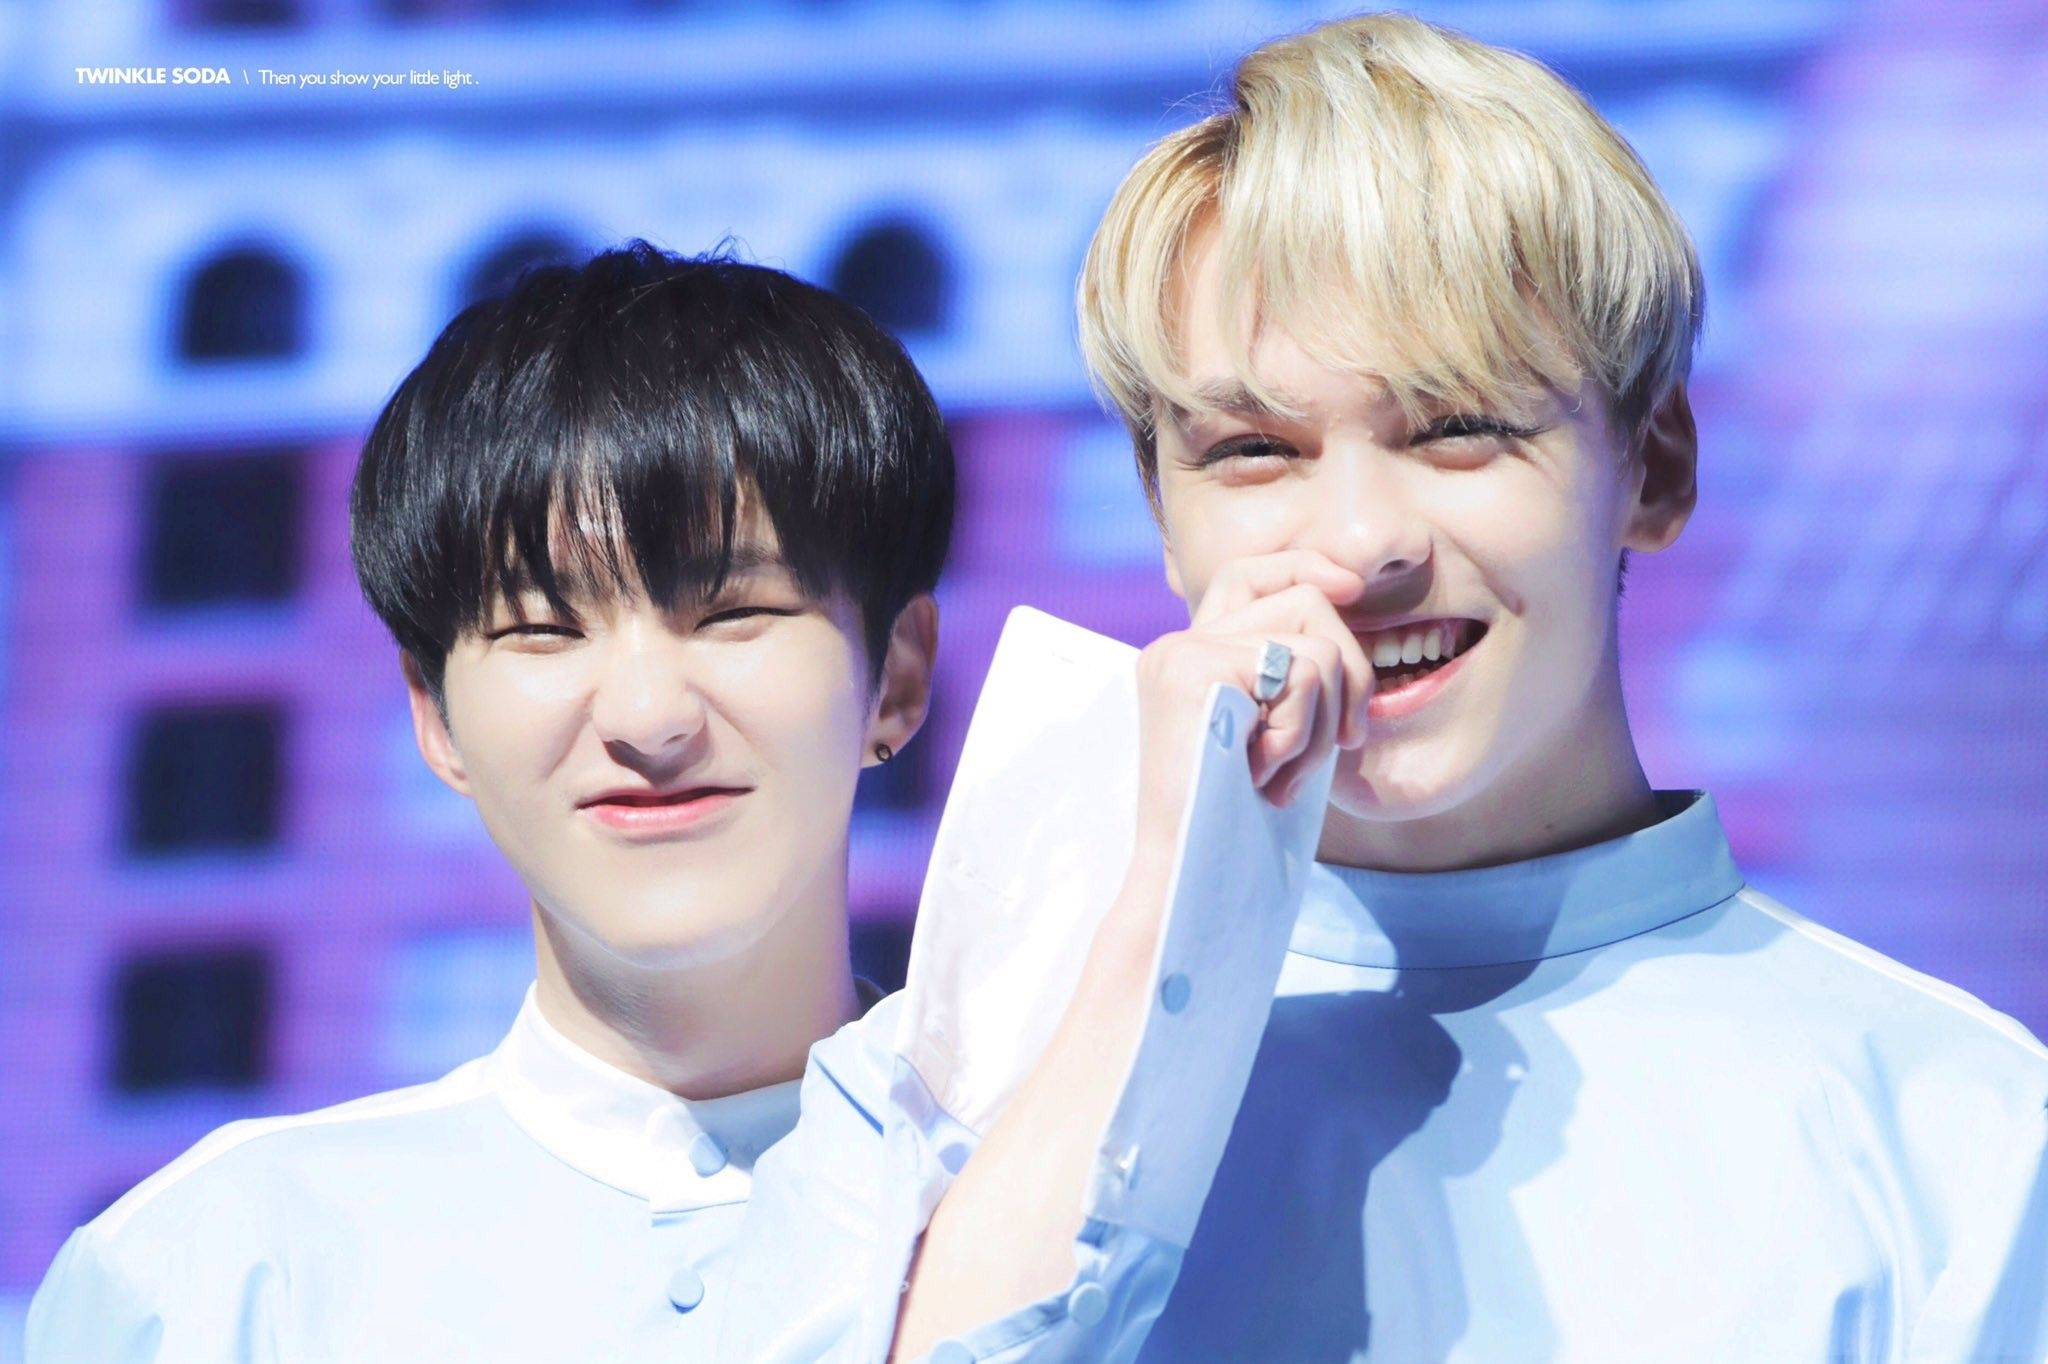 These Two Svt Cuties Always Give Me Diabetes Allkpop Forums